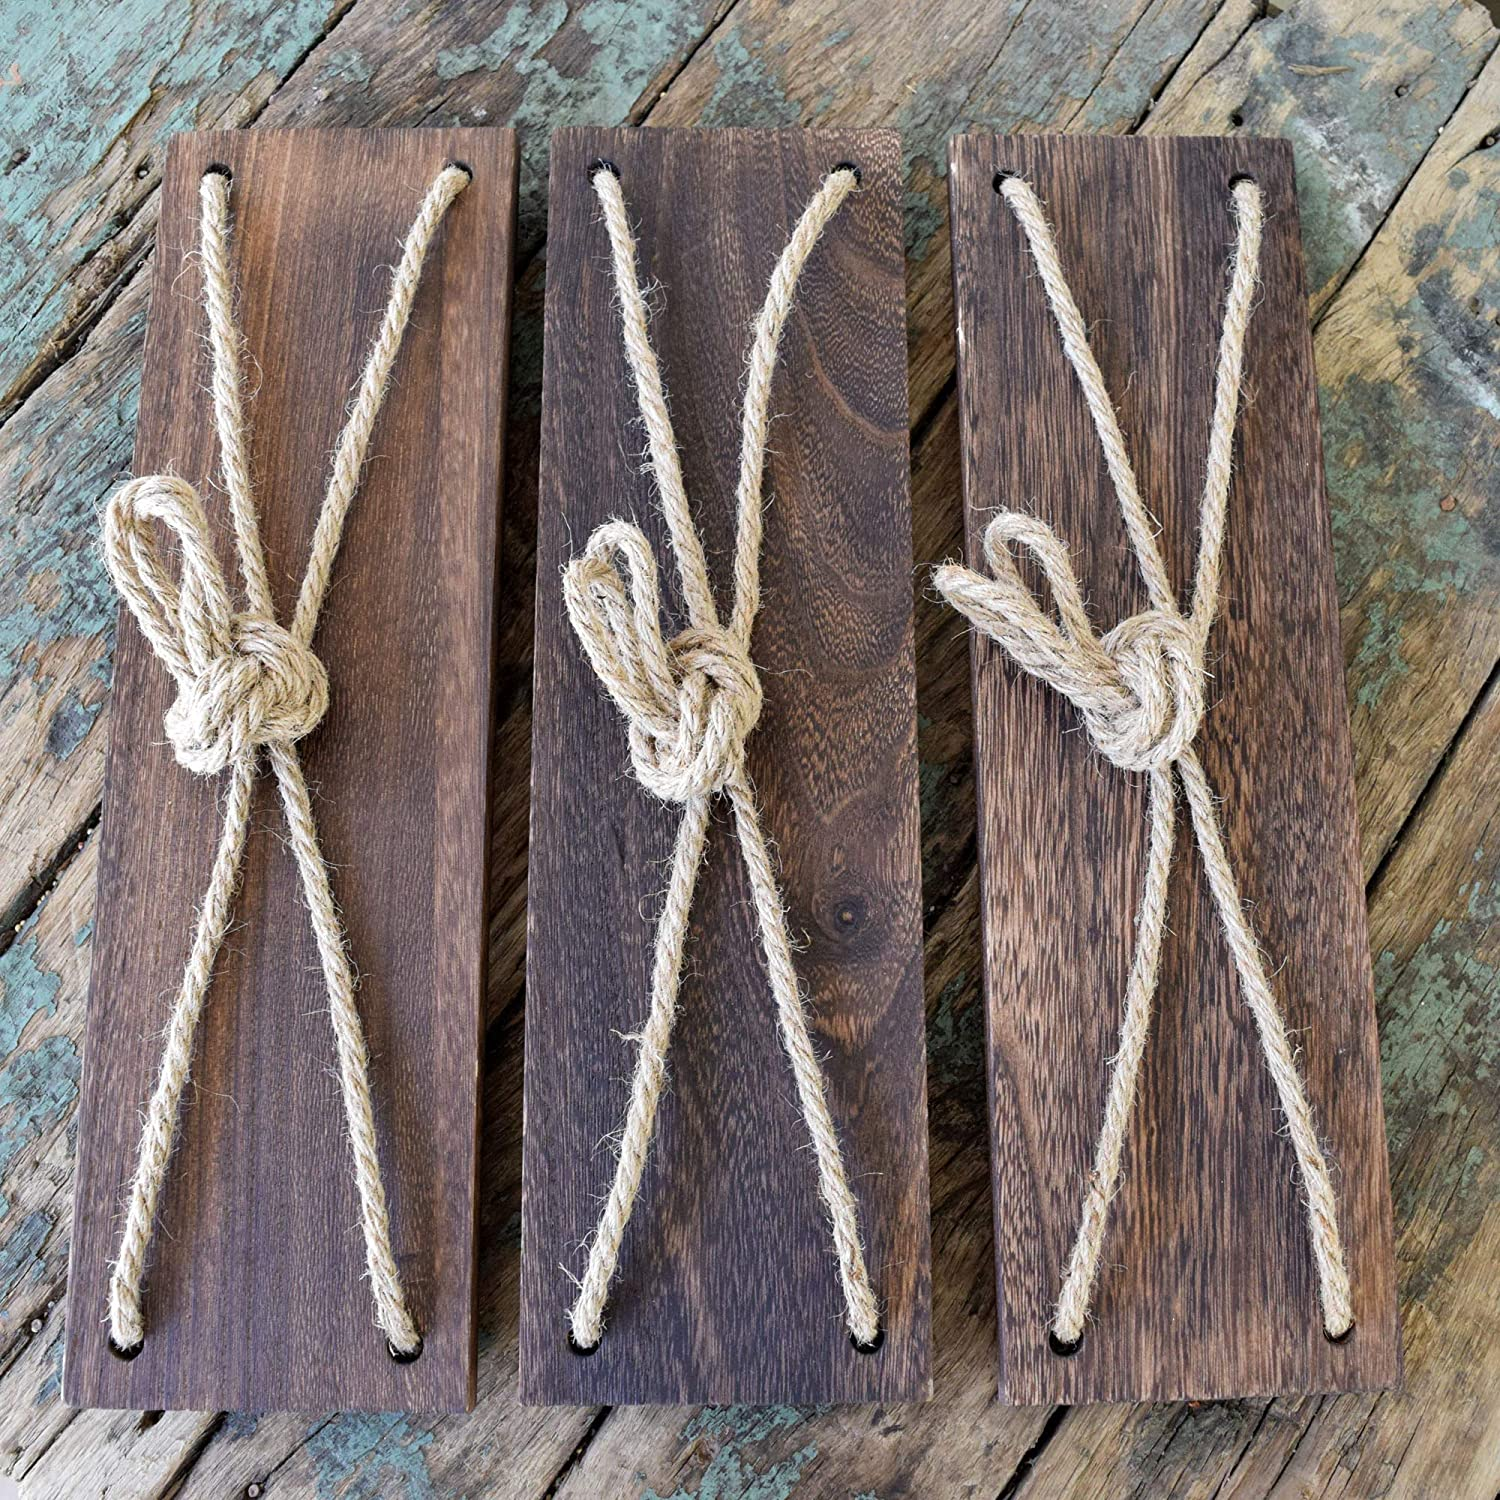 Set of 3 Happy Magnolia 17 Reclaimed Wood Hanging Swing Rope Floating Shelves Rustic Wall Decor